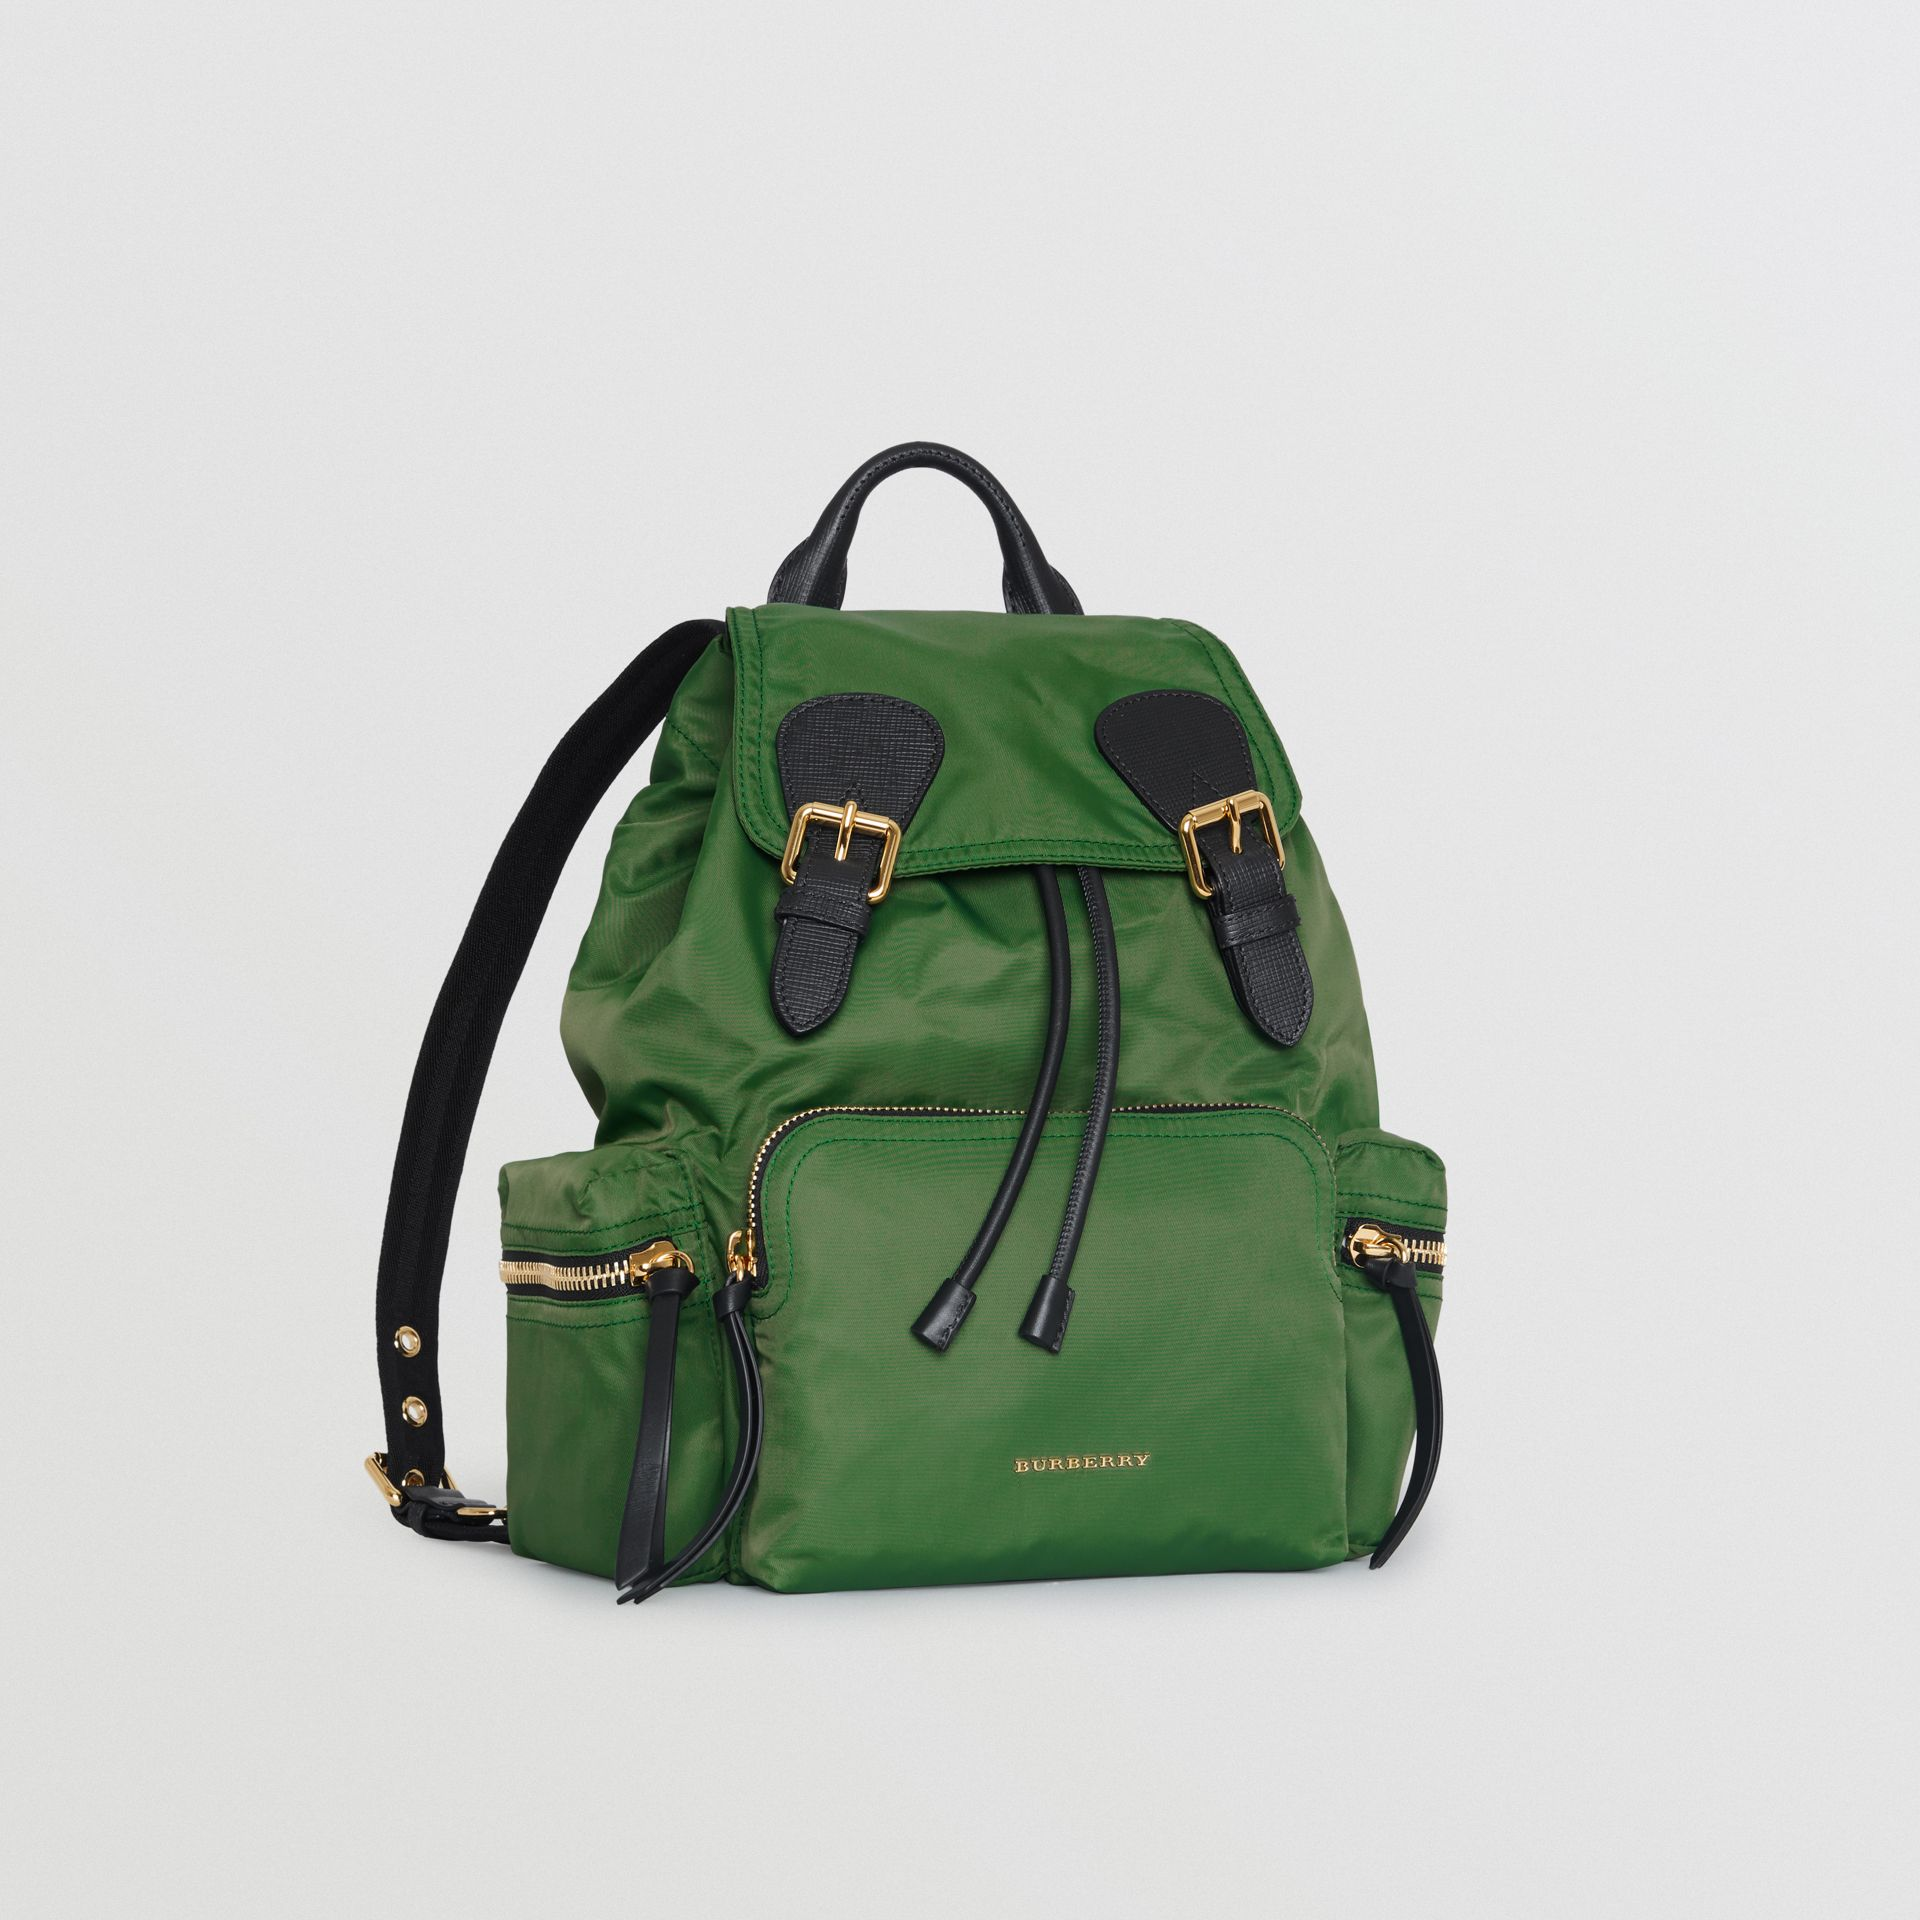 Sac The Rucksack moyen en nylon technique et cuir (Vert Racing) - Femme | Burberry Canada - photo de la galerie 6